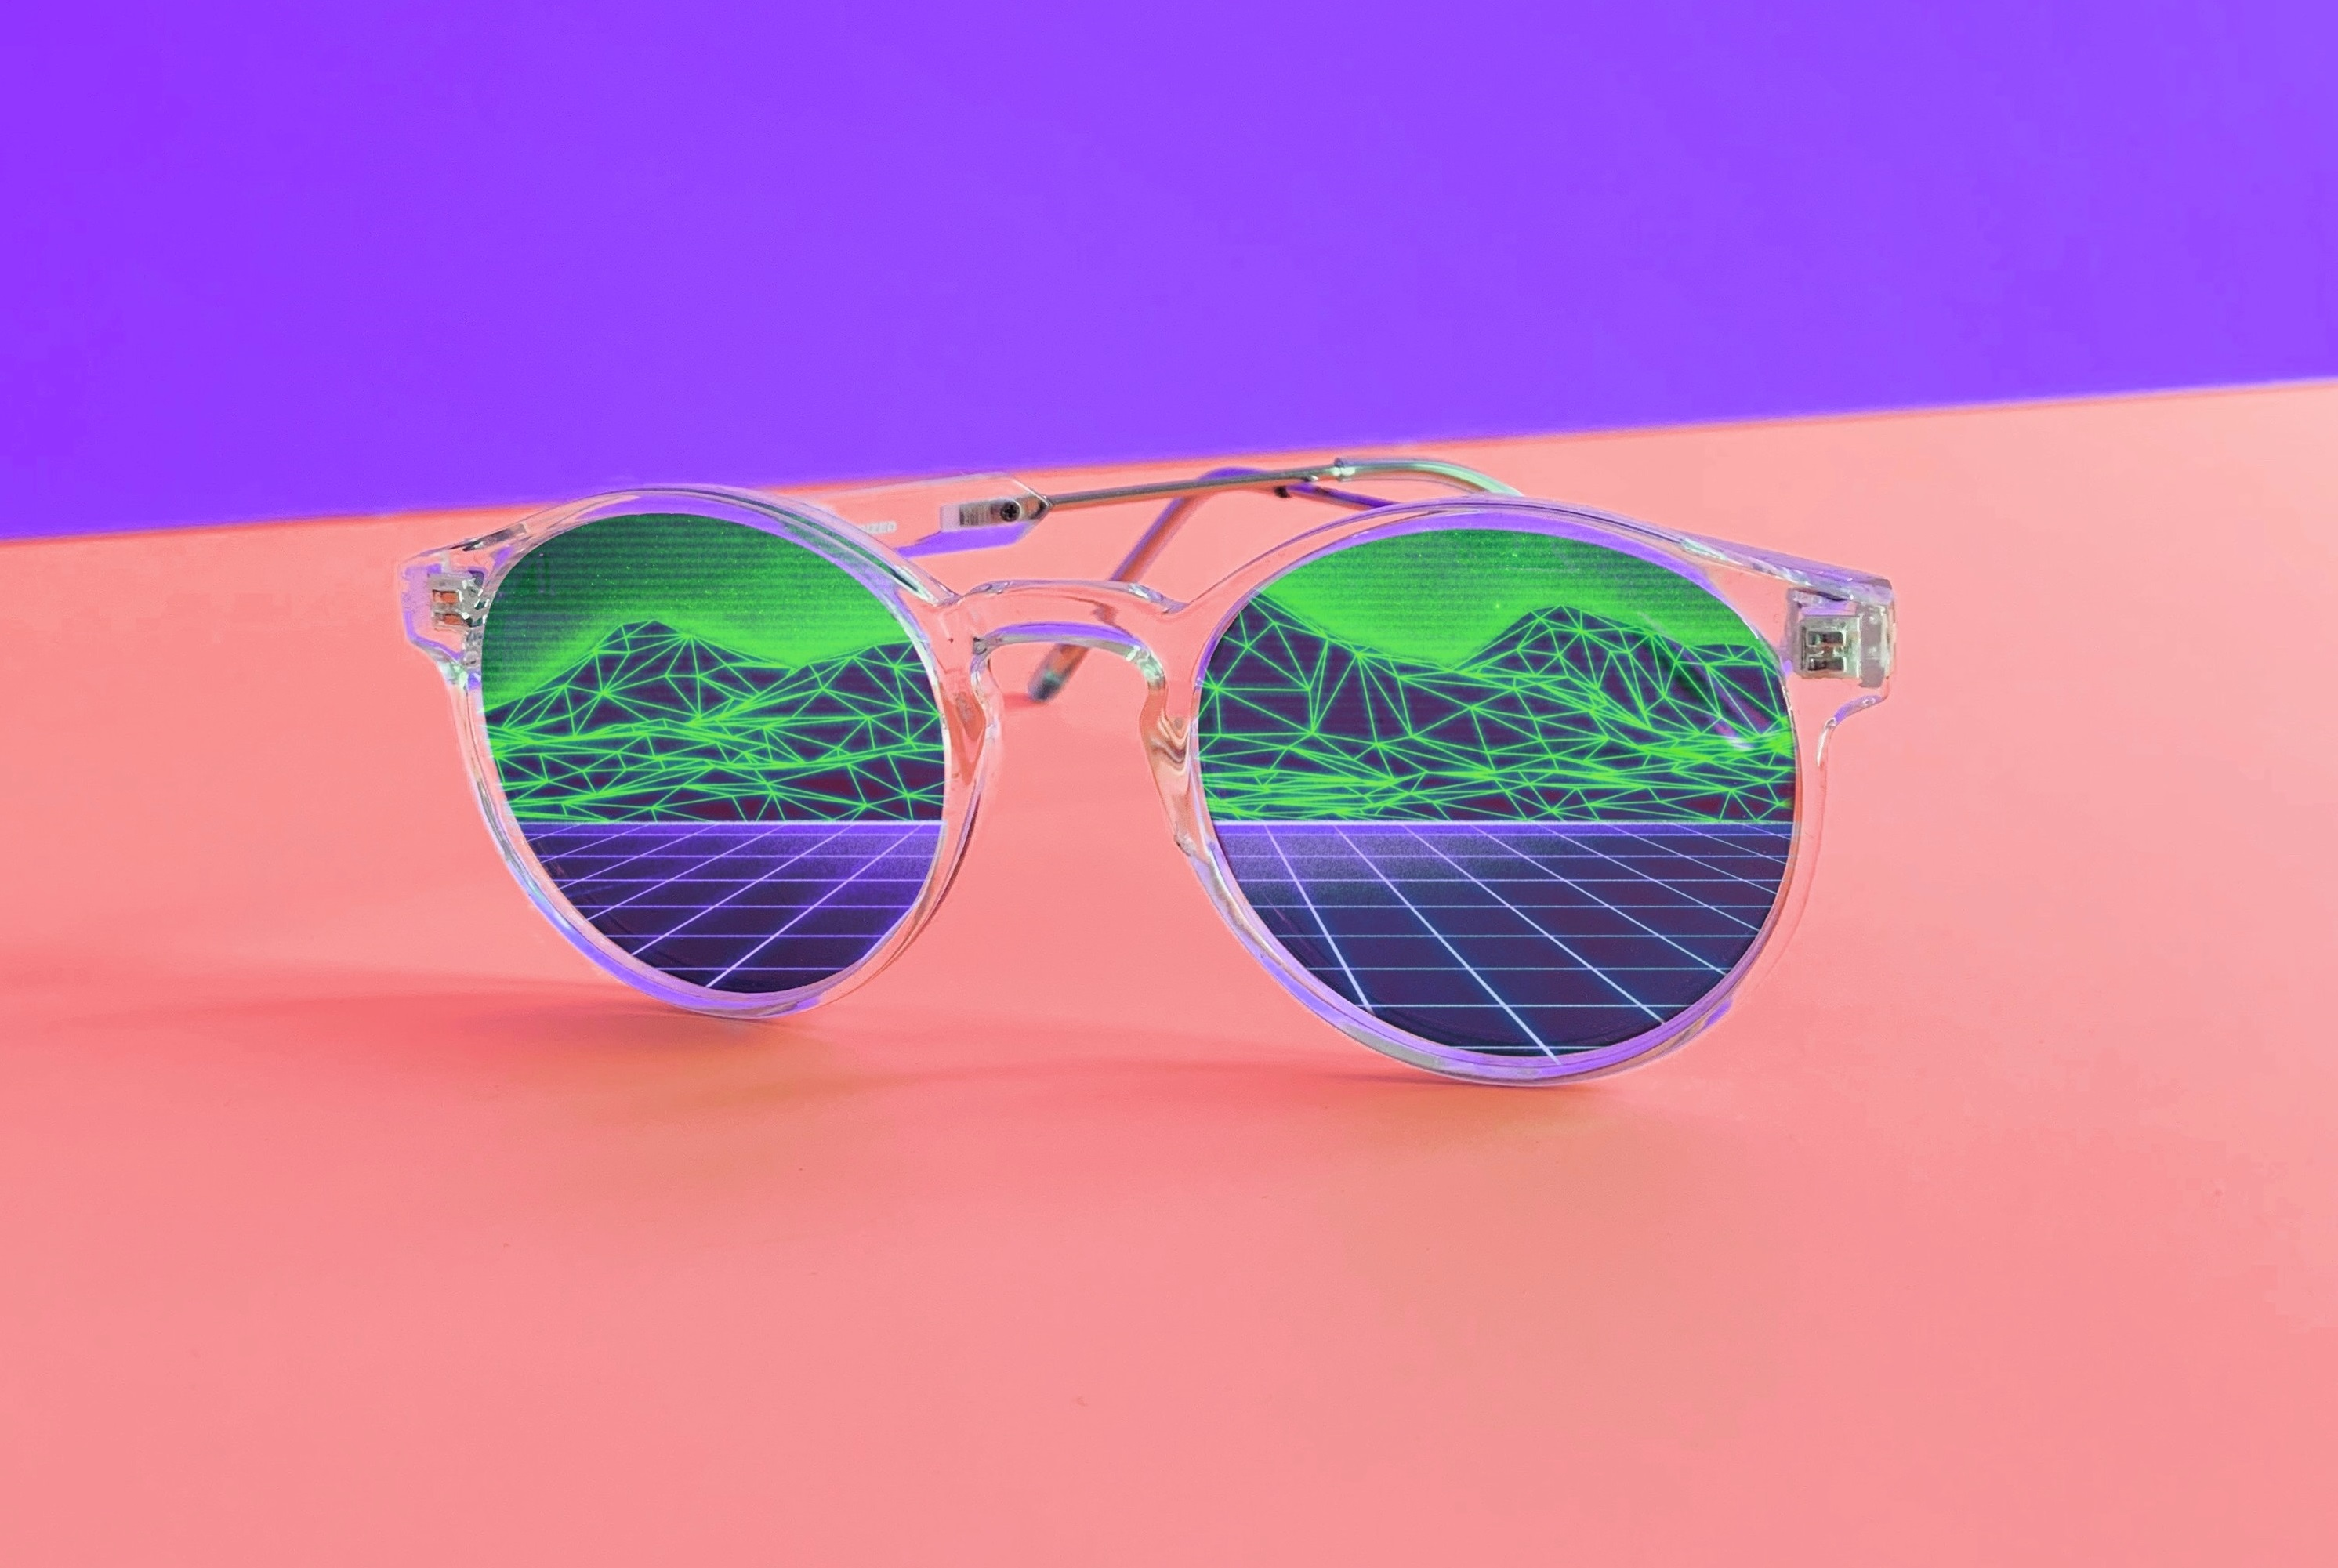 Metallic, reflective glasses in front of a purple and pink background.